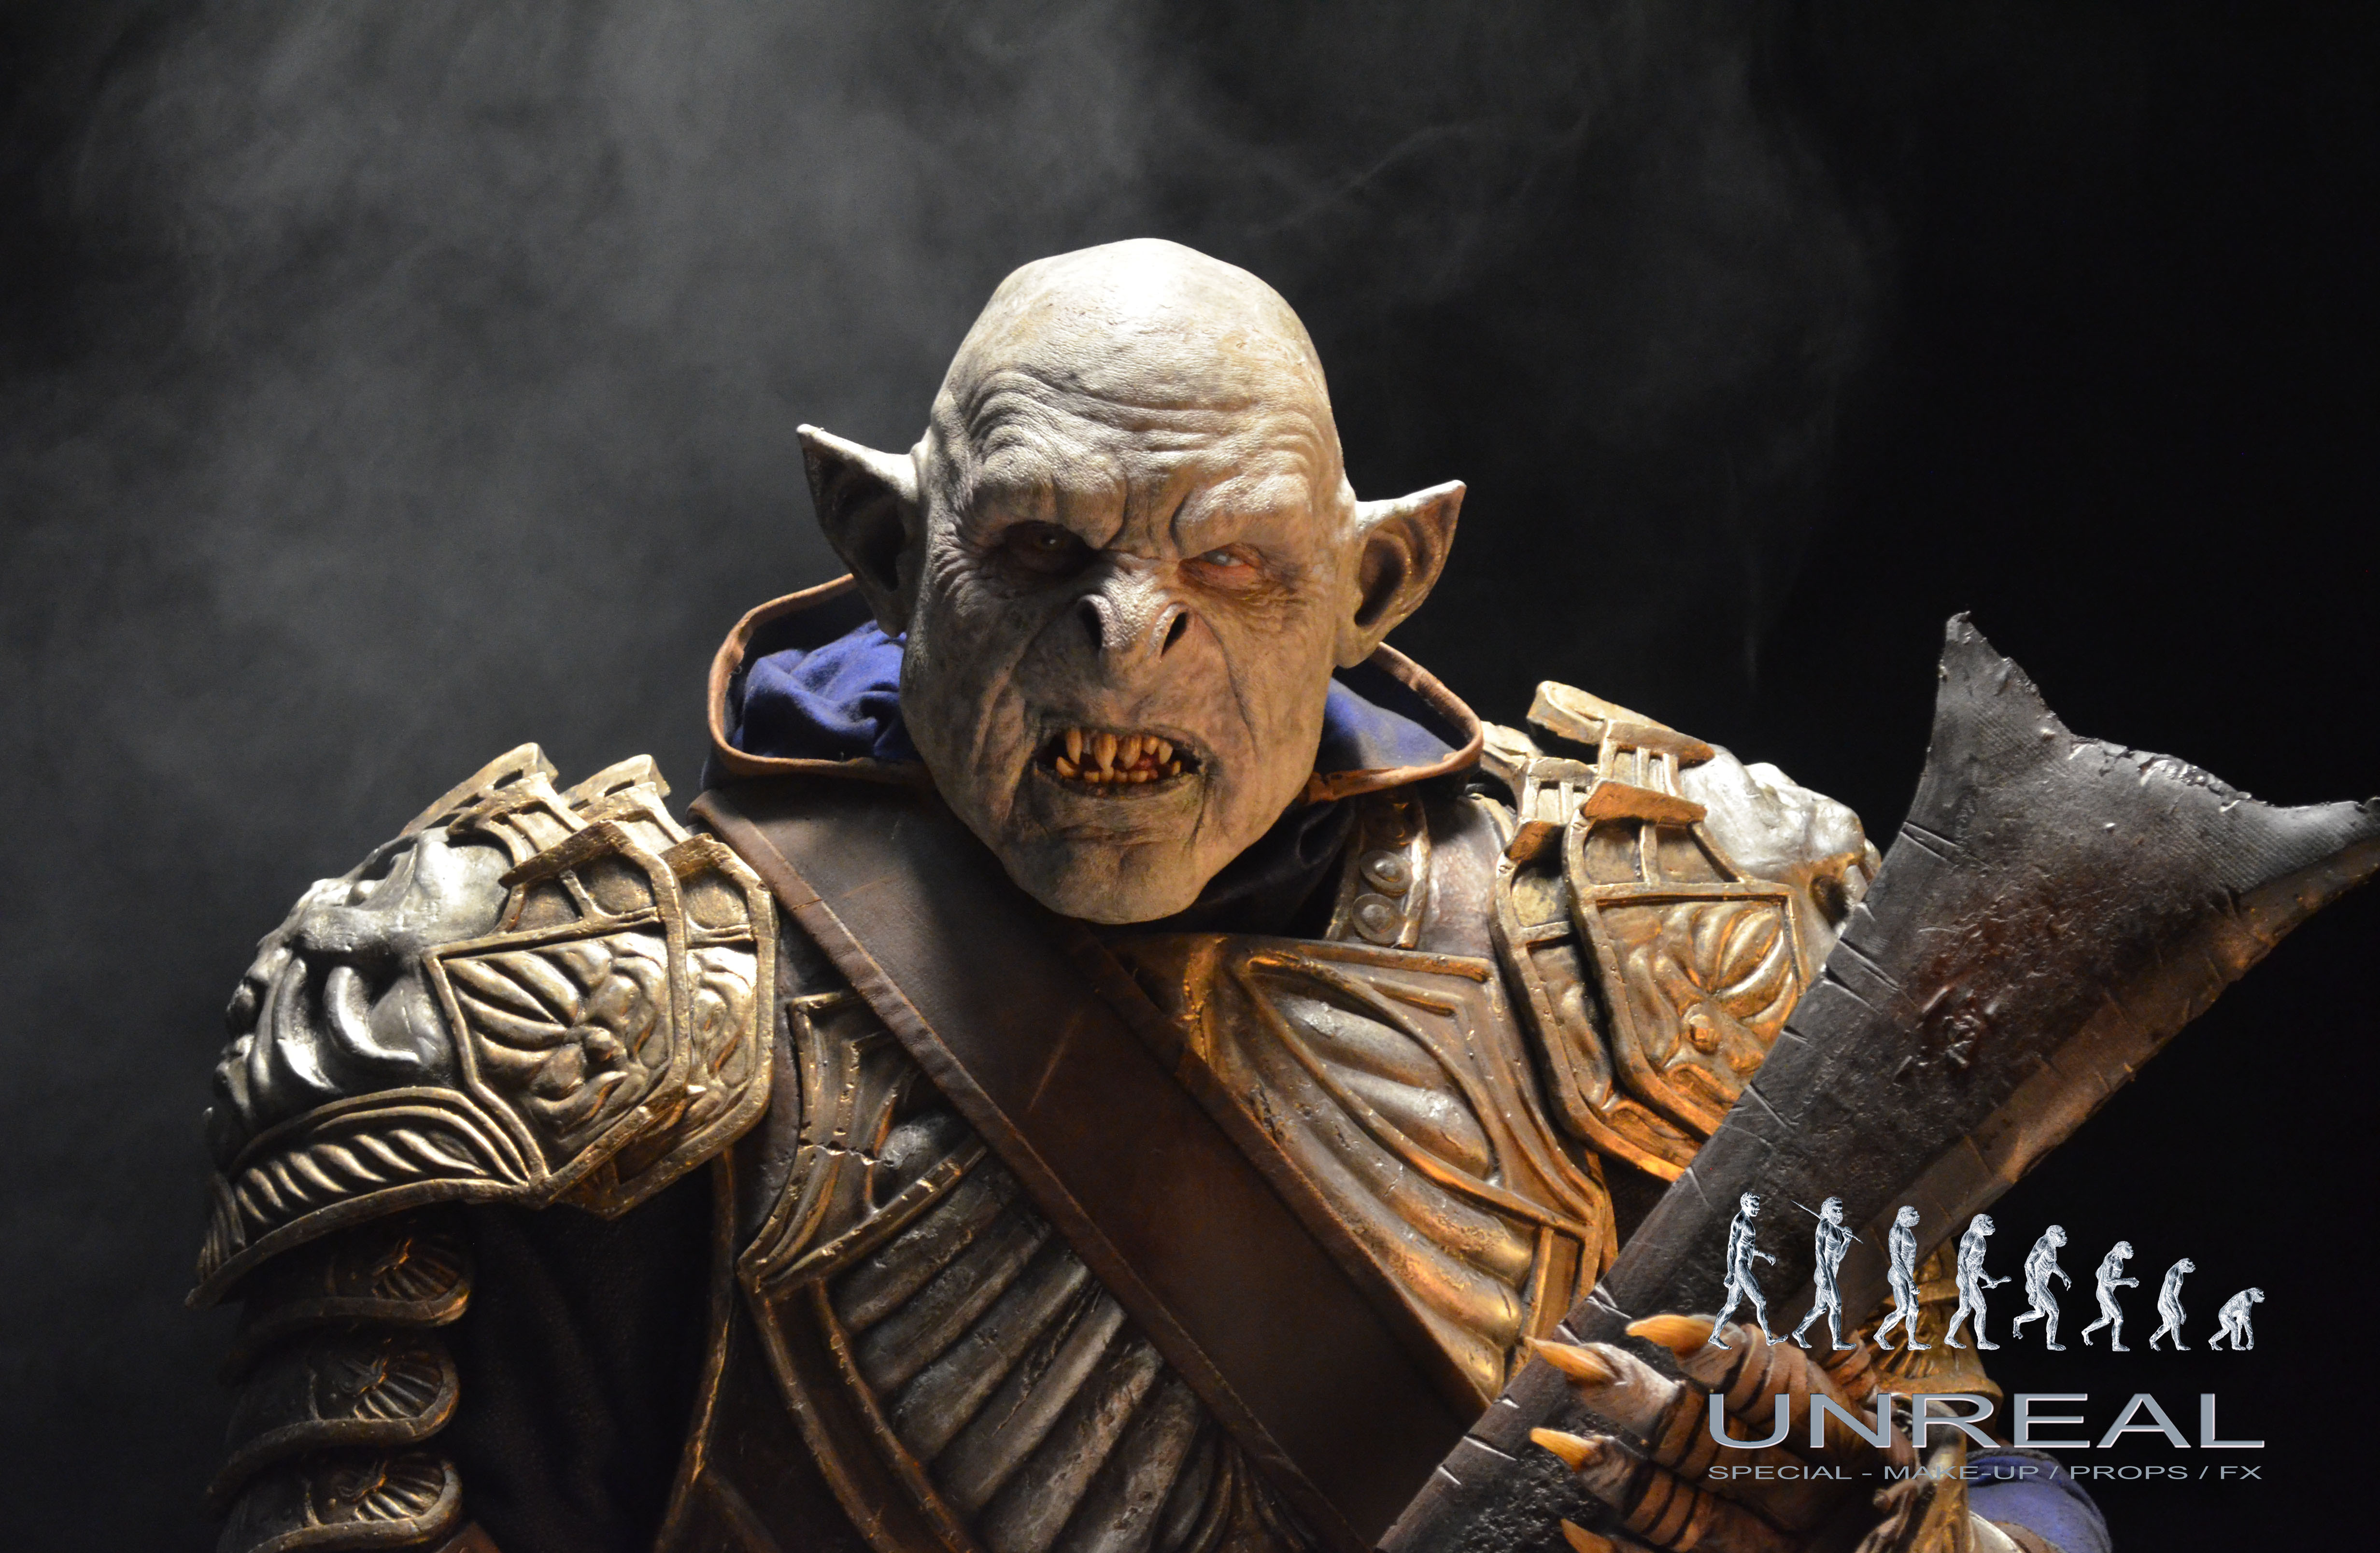 unreal_orc_prosthetic_make-upfx_ps4_Mogg_